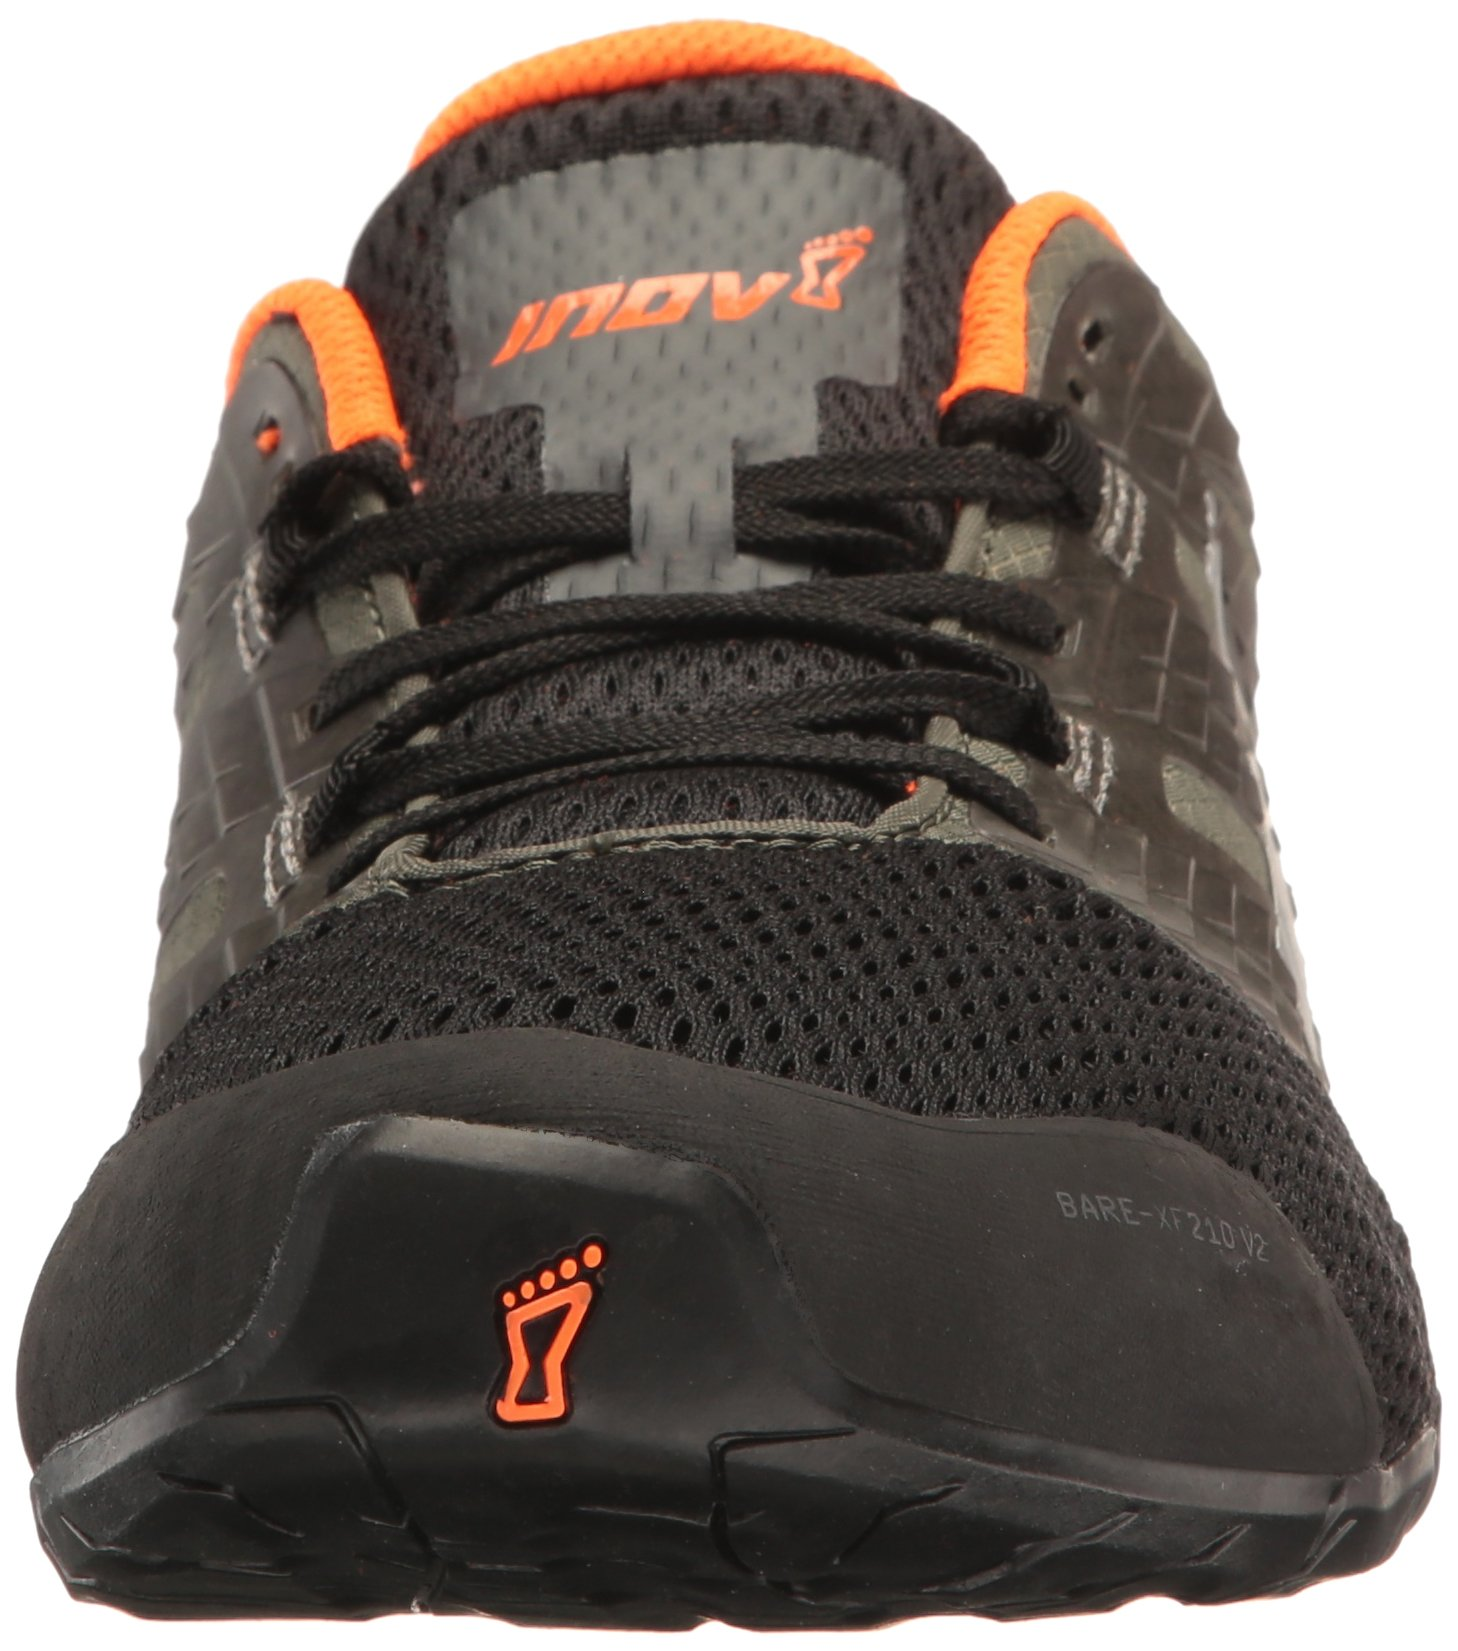 Inov-8 Men's Bare-XF 210 v2 (M) Cross Trainer Grey/Black/Orange 11 D US by Inov-8 (Image #4)